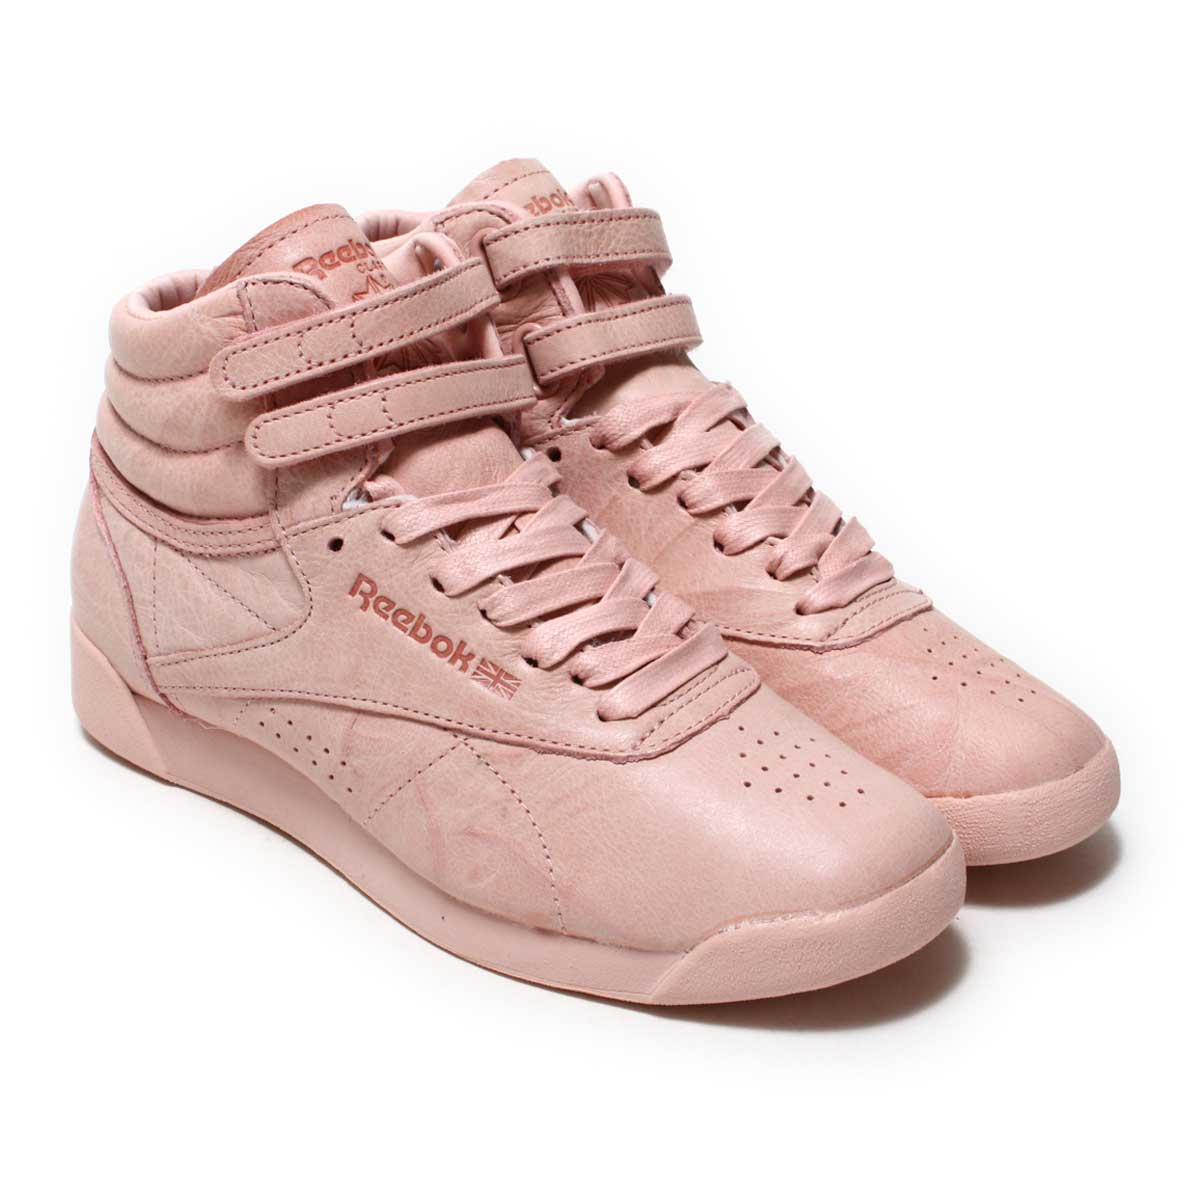 edf1123ca88 FREE STYLE is bestseller shoes in lady s shoes of Reebok. I appear as  lady s aerobics shoes in 1982. The garment leather (high-quality natural  leather) ...